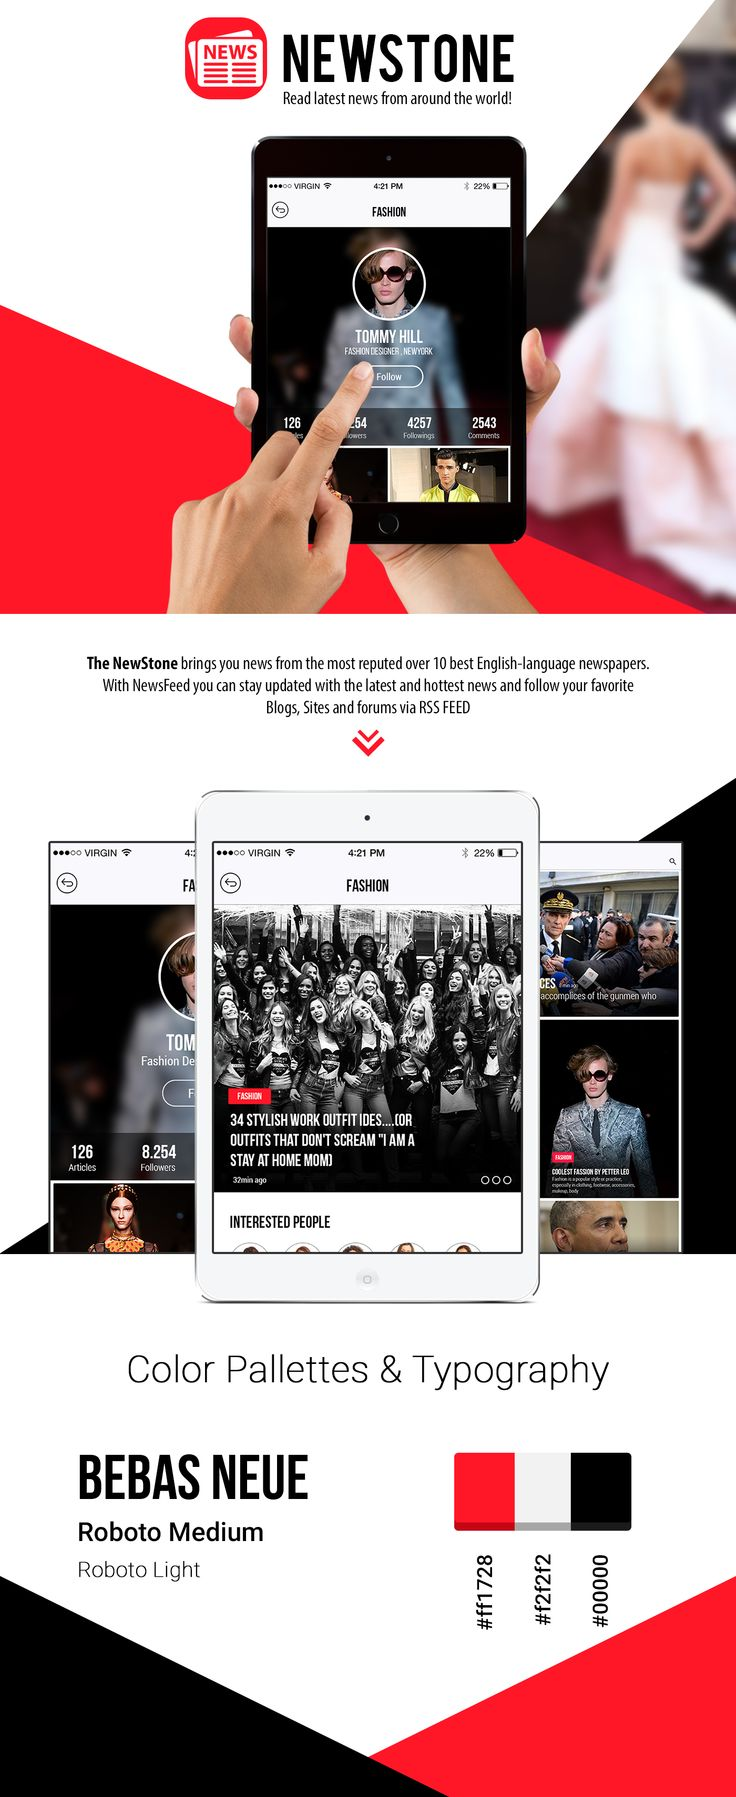 Designed & Developed by AppInventiv, The NewStone brings you news from the most reputed over 10 best English-language newspapers. With NewsFeed you can stay updated with the lastest and hottest news and follow your favorite Blogs, Sites and forums via RSS FEED.